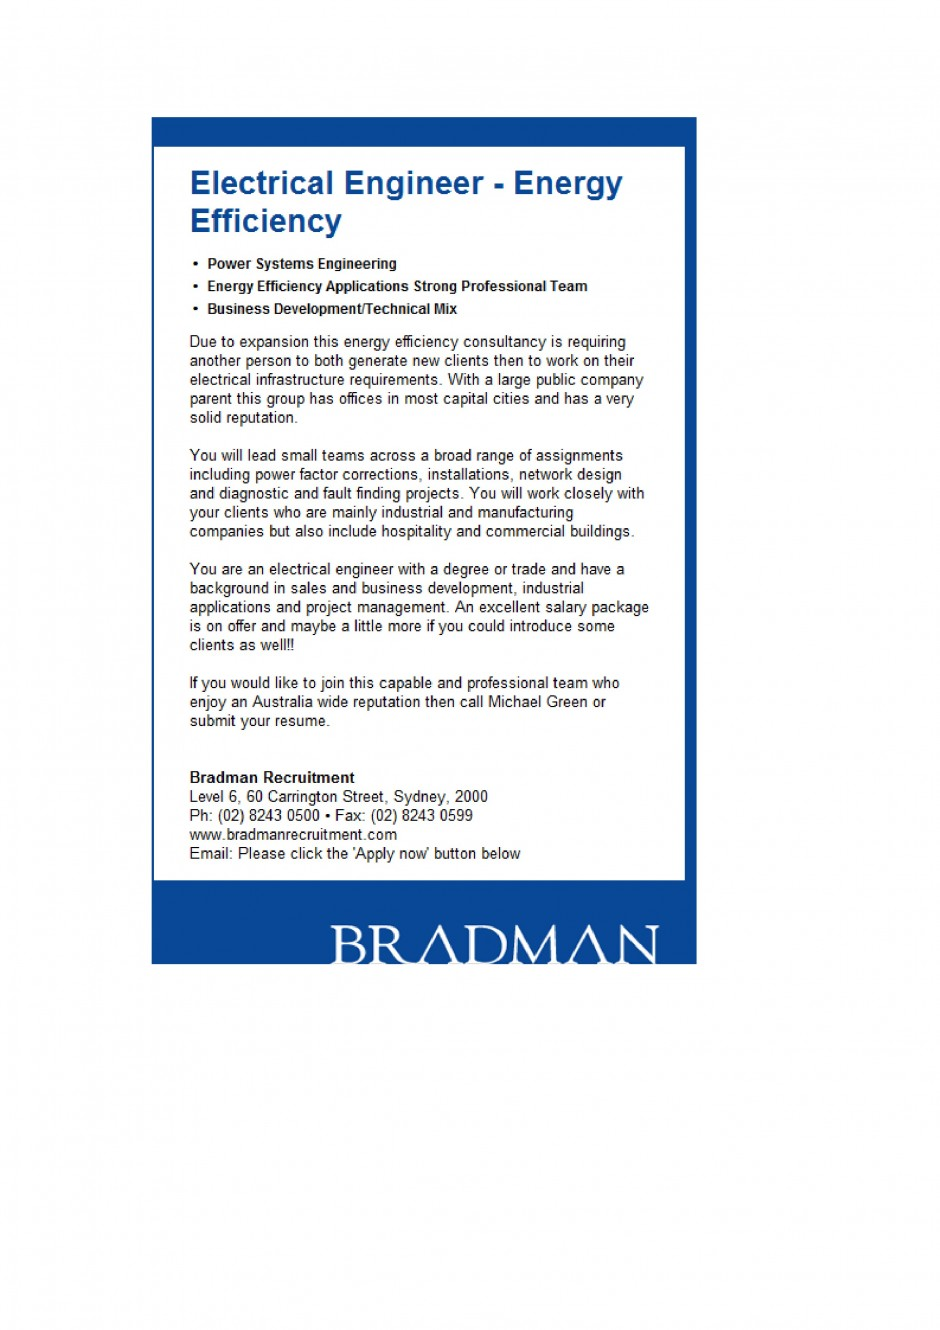 recent assignments bradman recruitment group electrical engineer